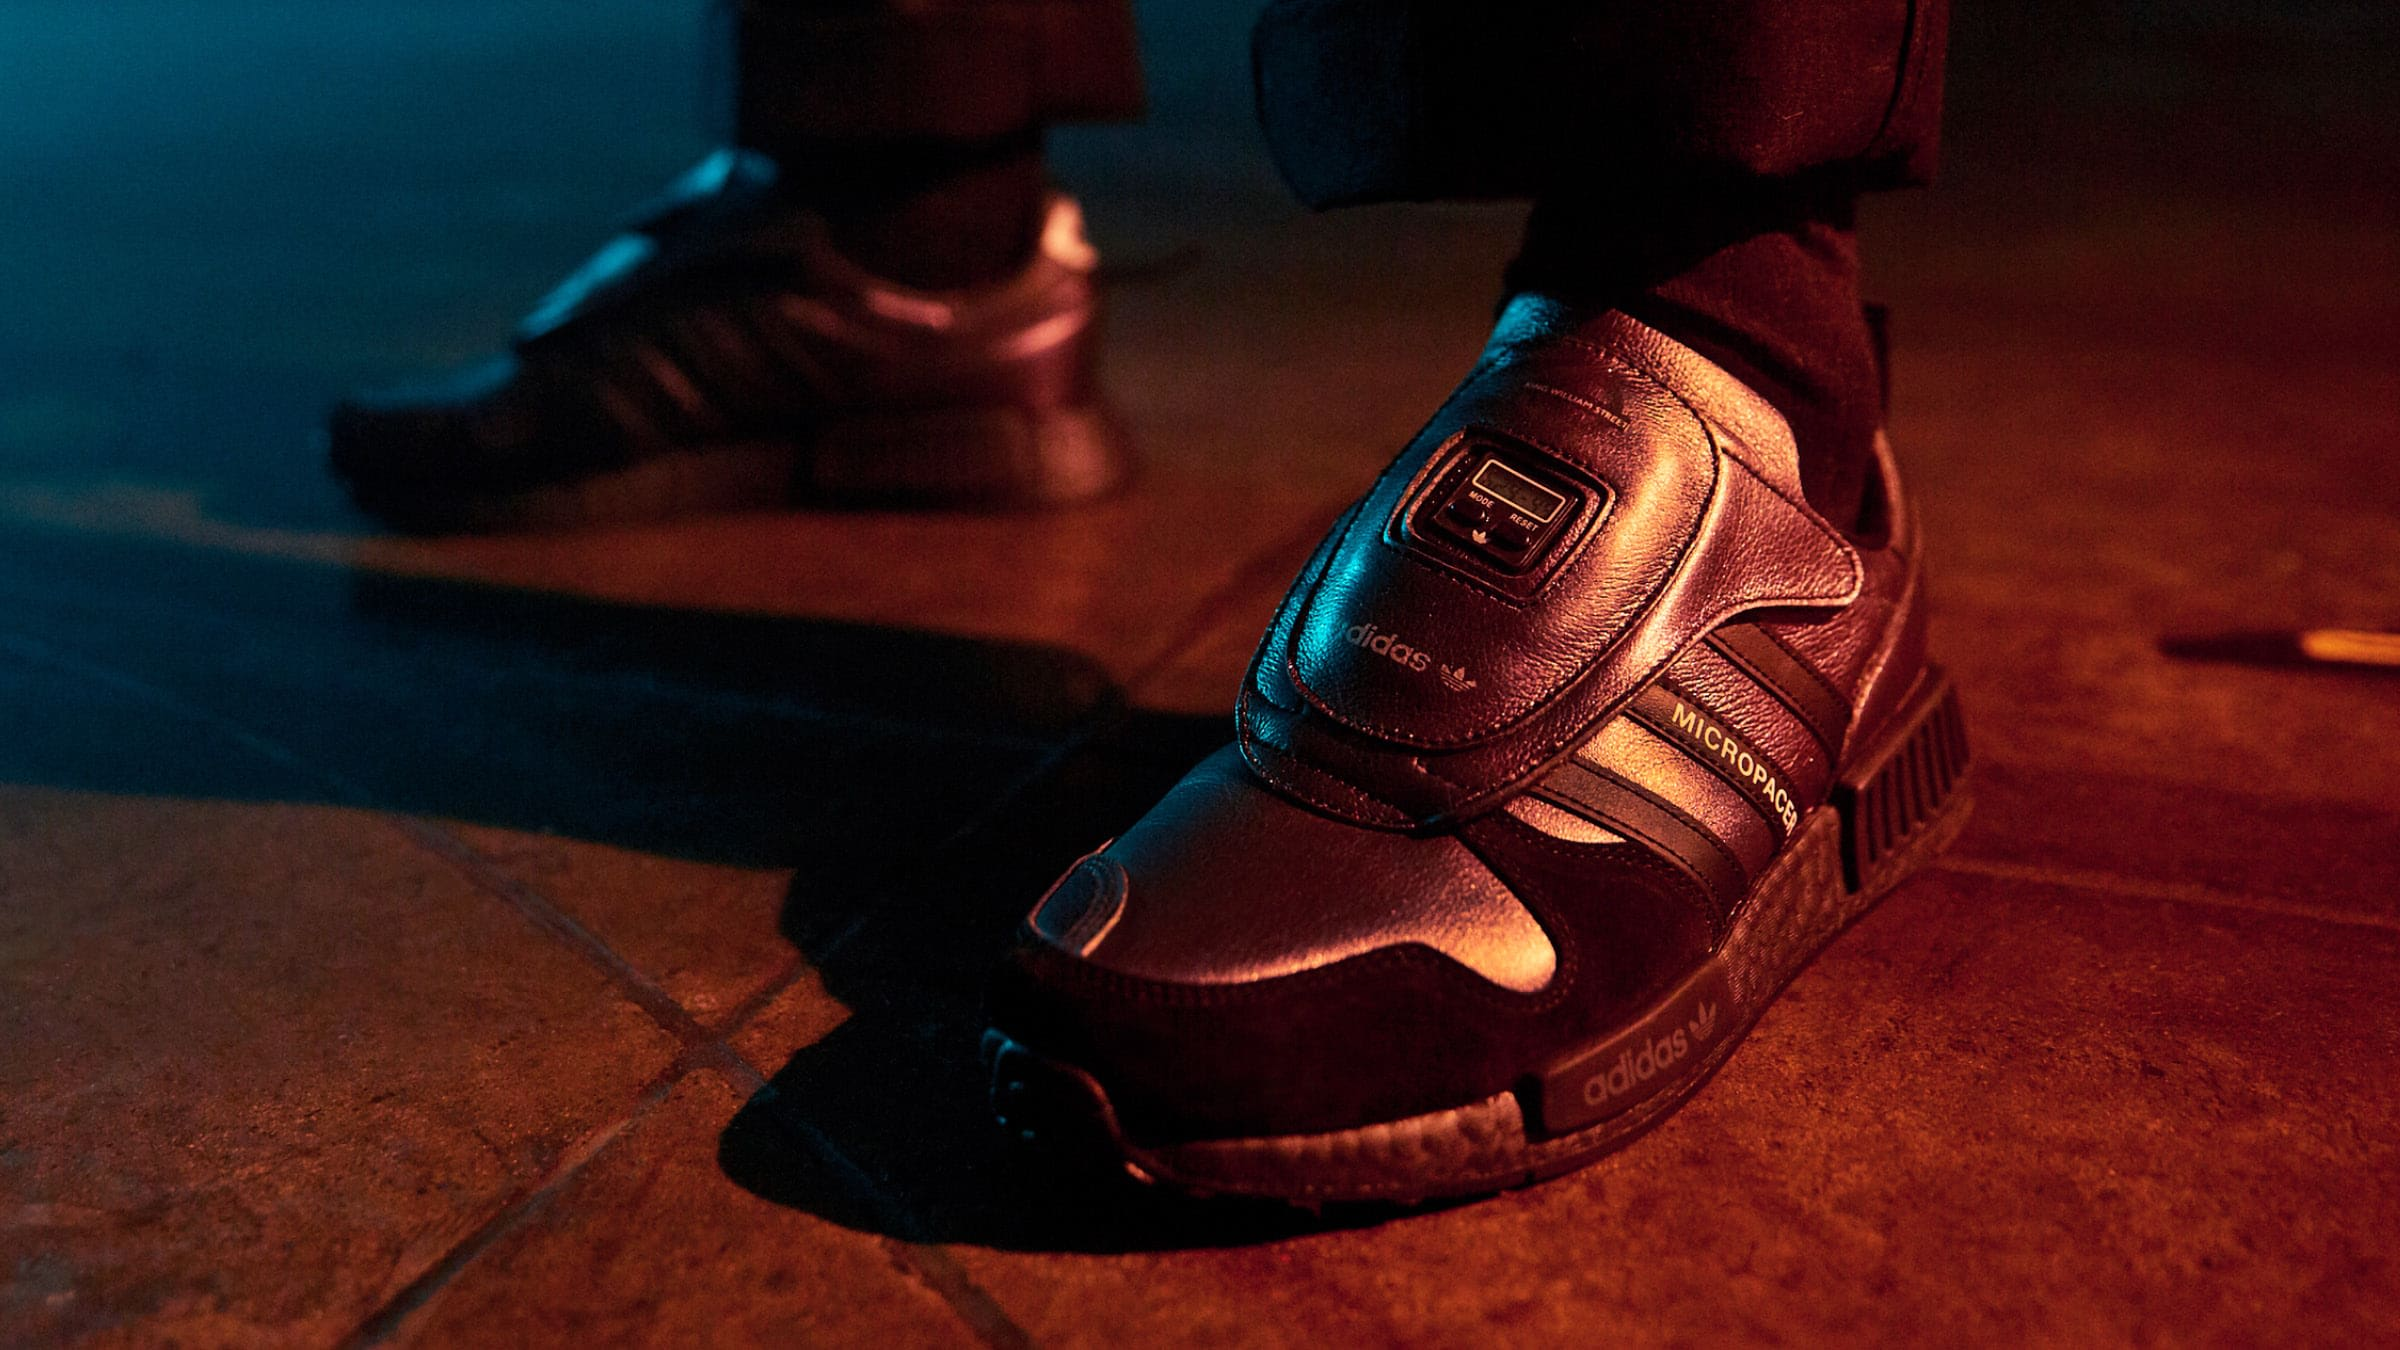 Thumbnail for BVG x adidas – The ticket shoe | Adidas